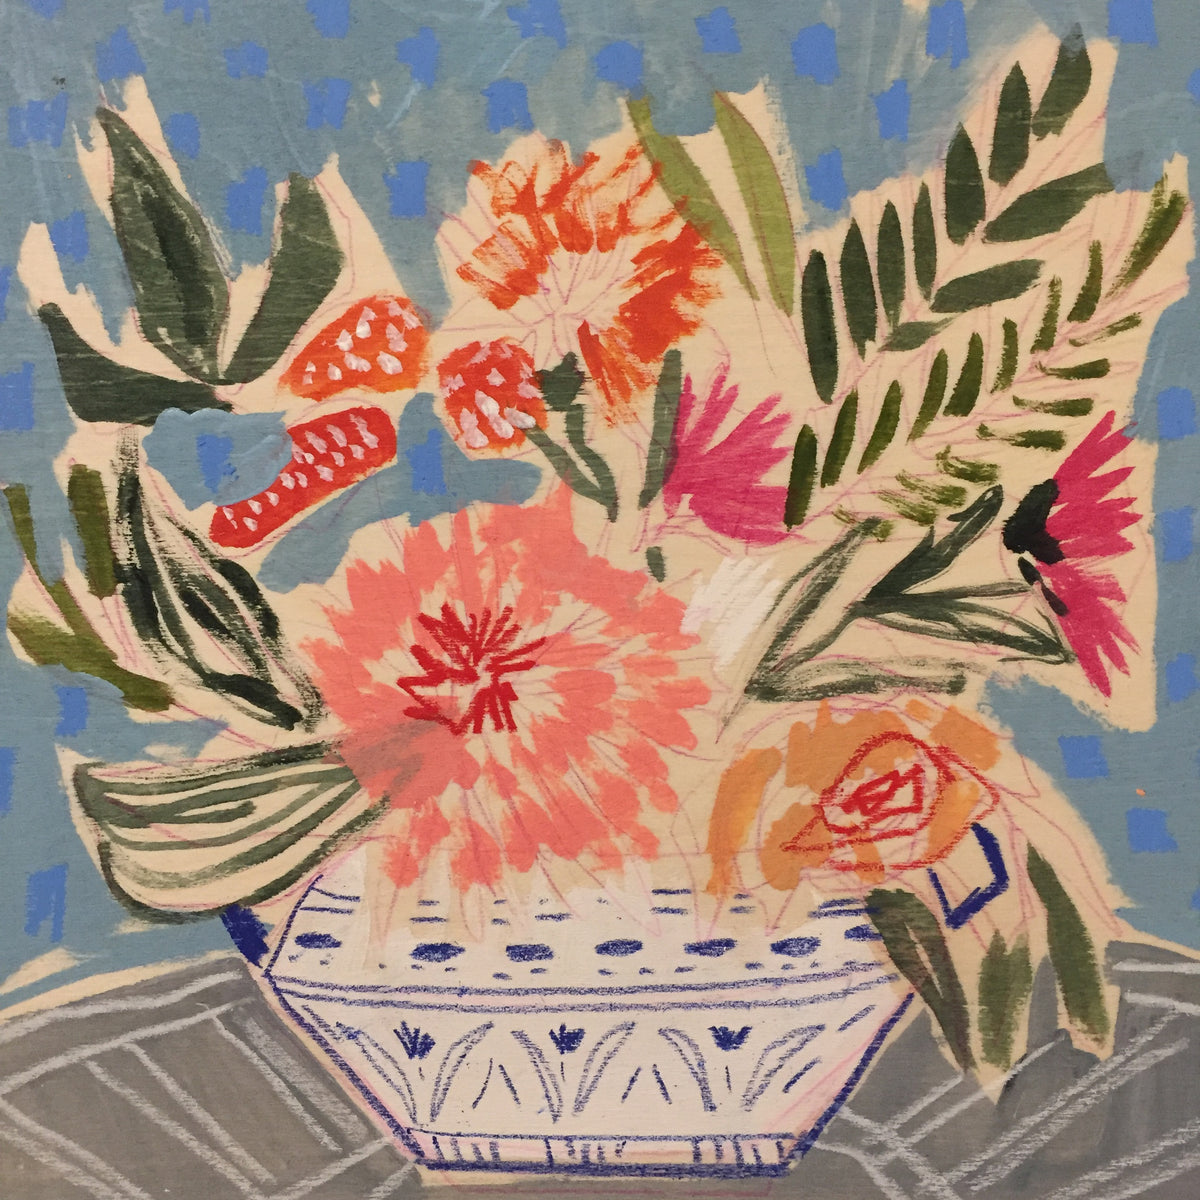 FLOWERS FOR FRANCES - 10x10